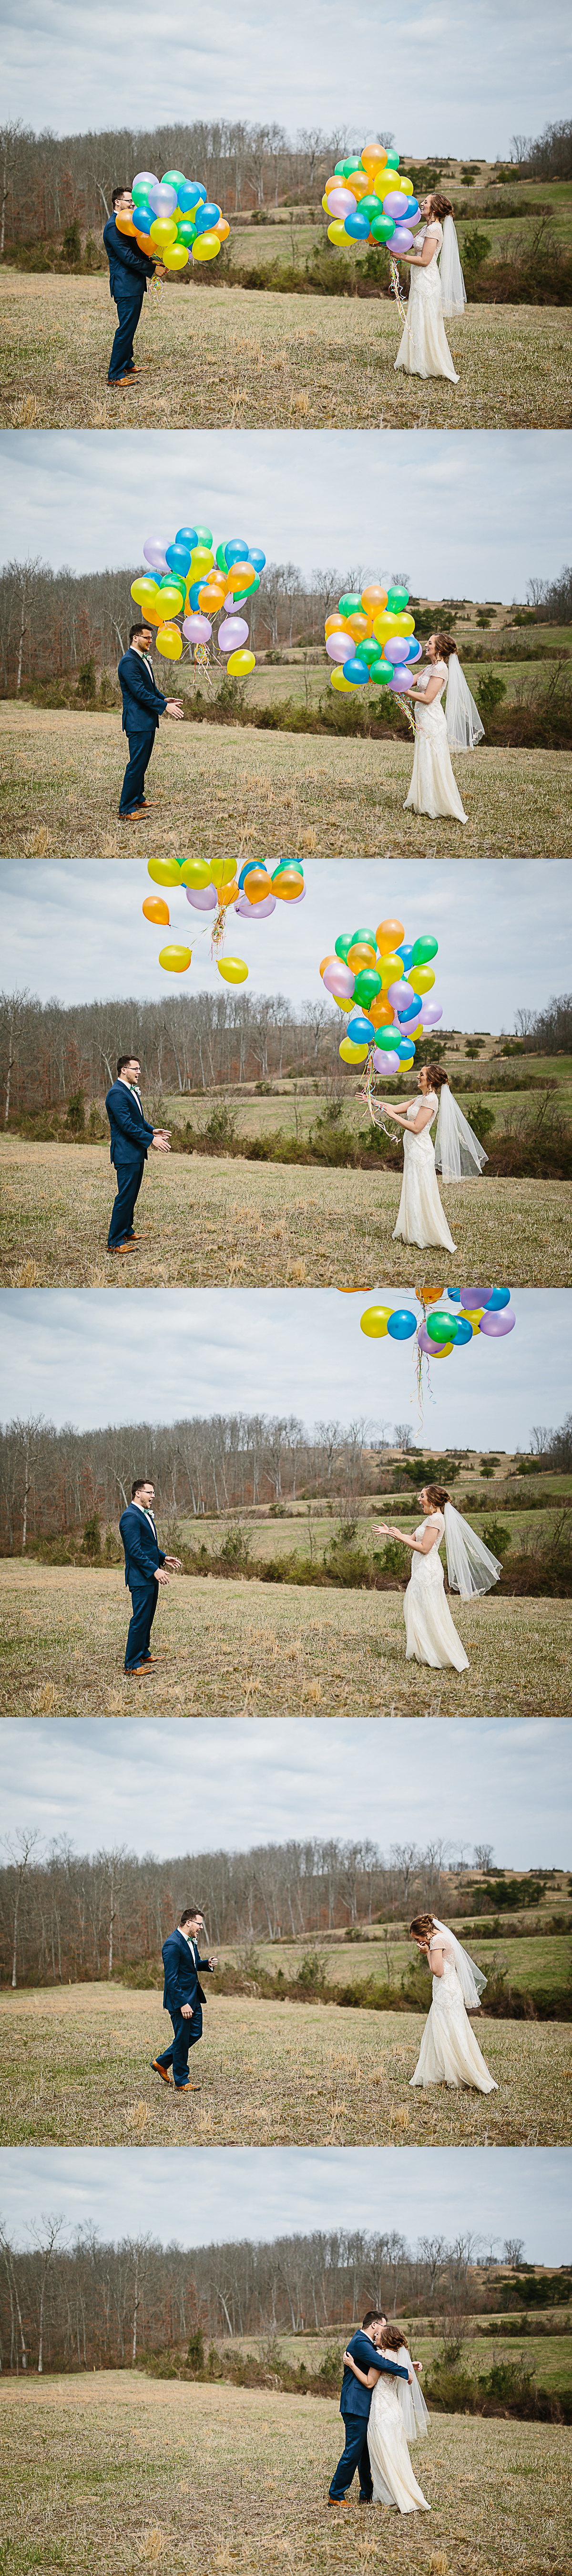 Adorable balloon release first look on wedding day by Corrie Mick Photography.jpg